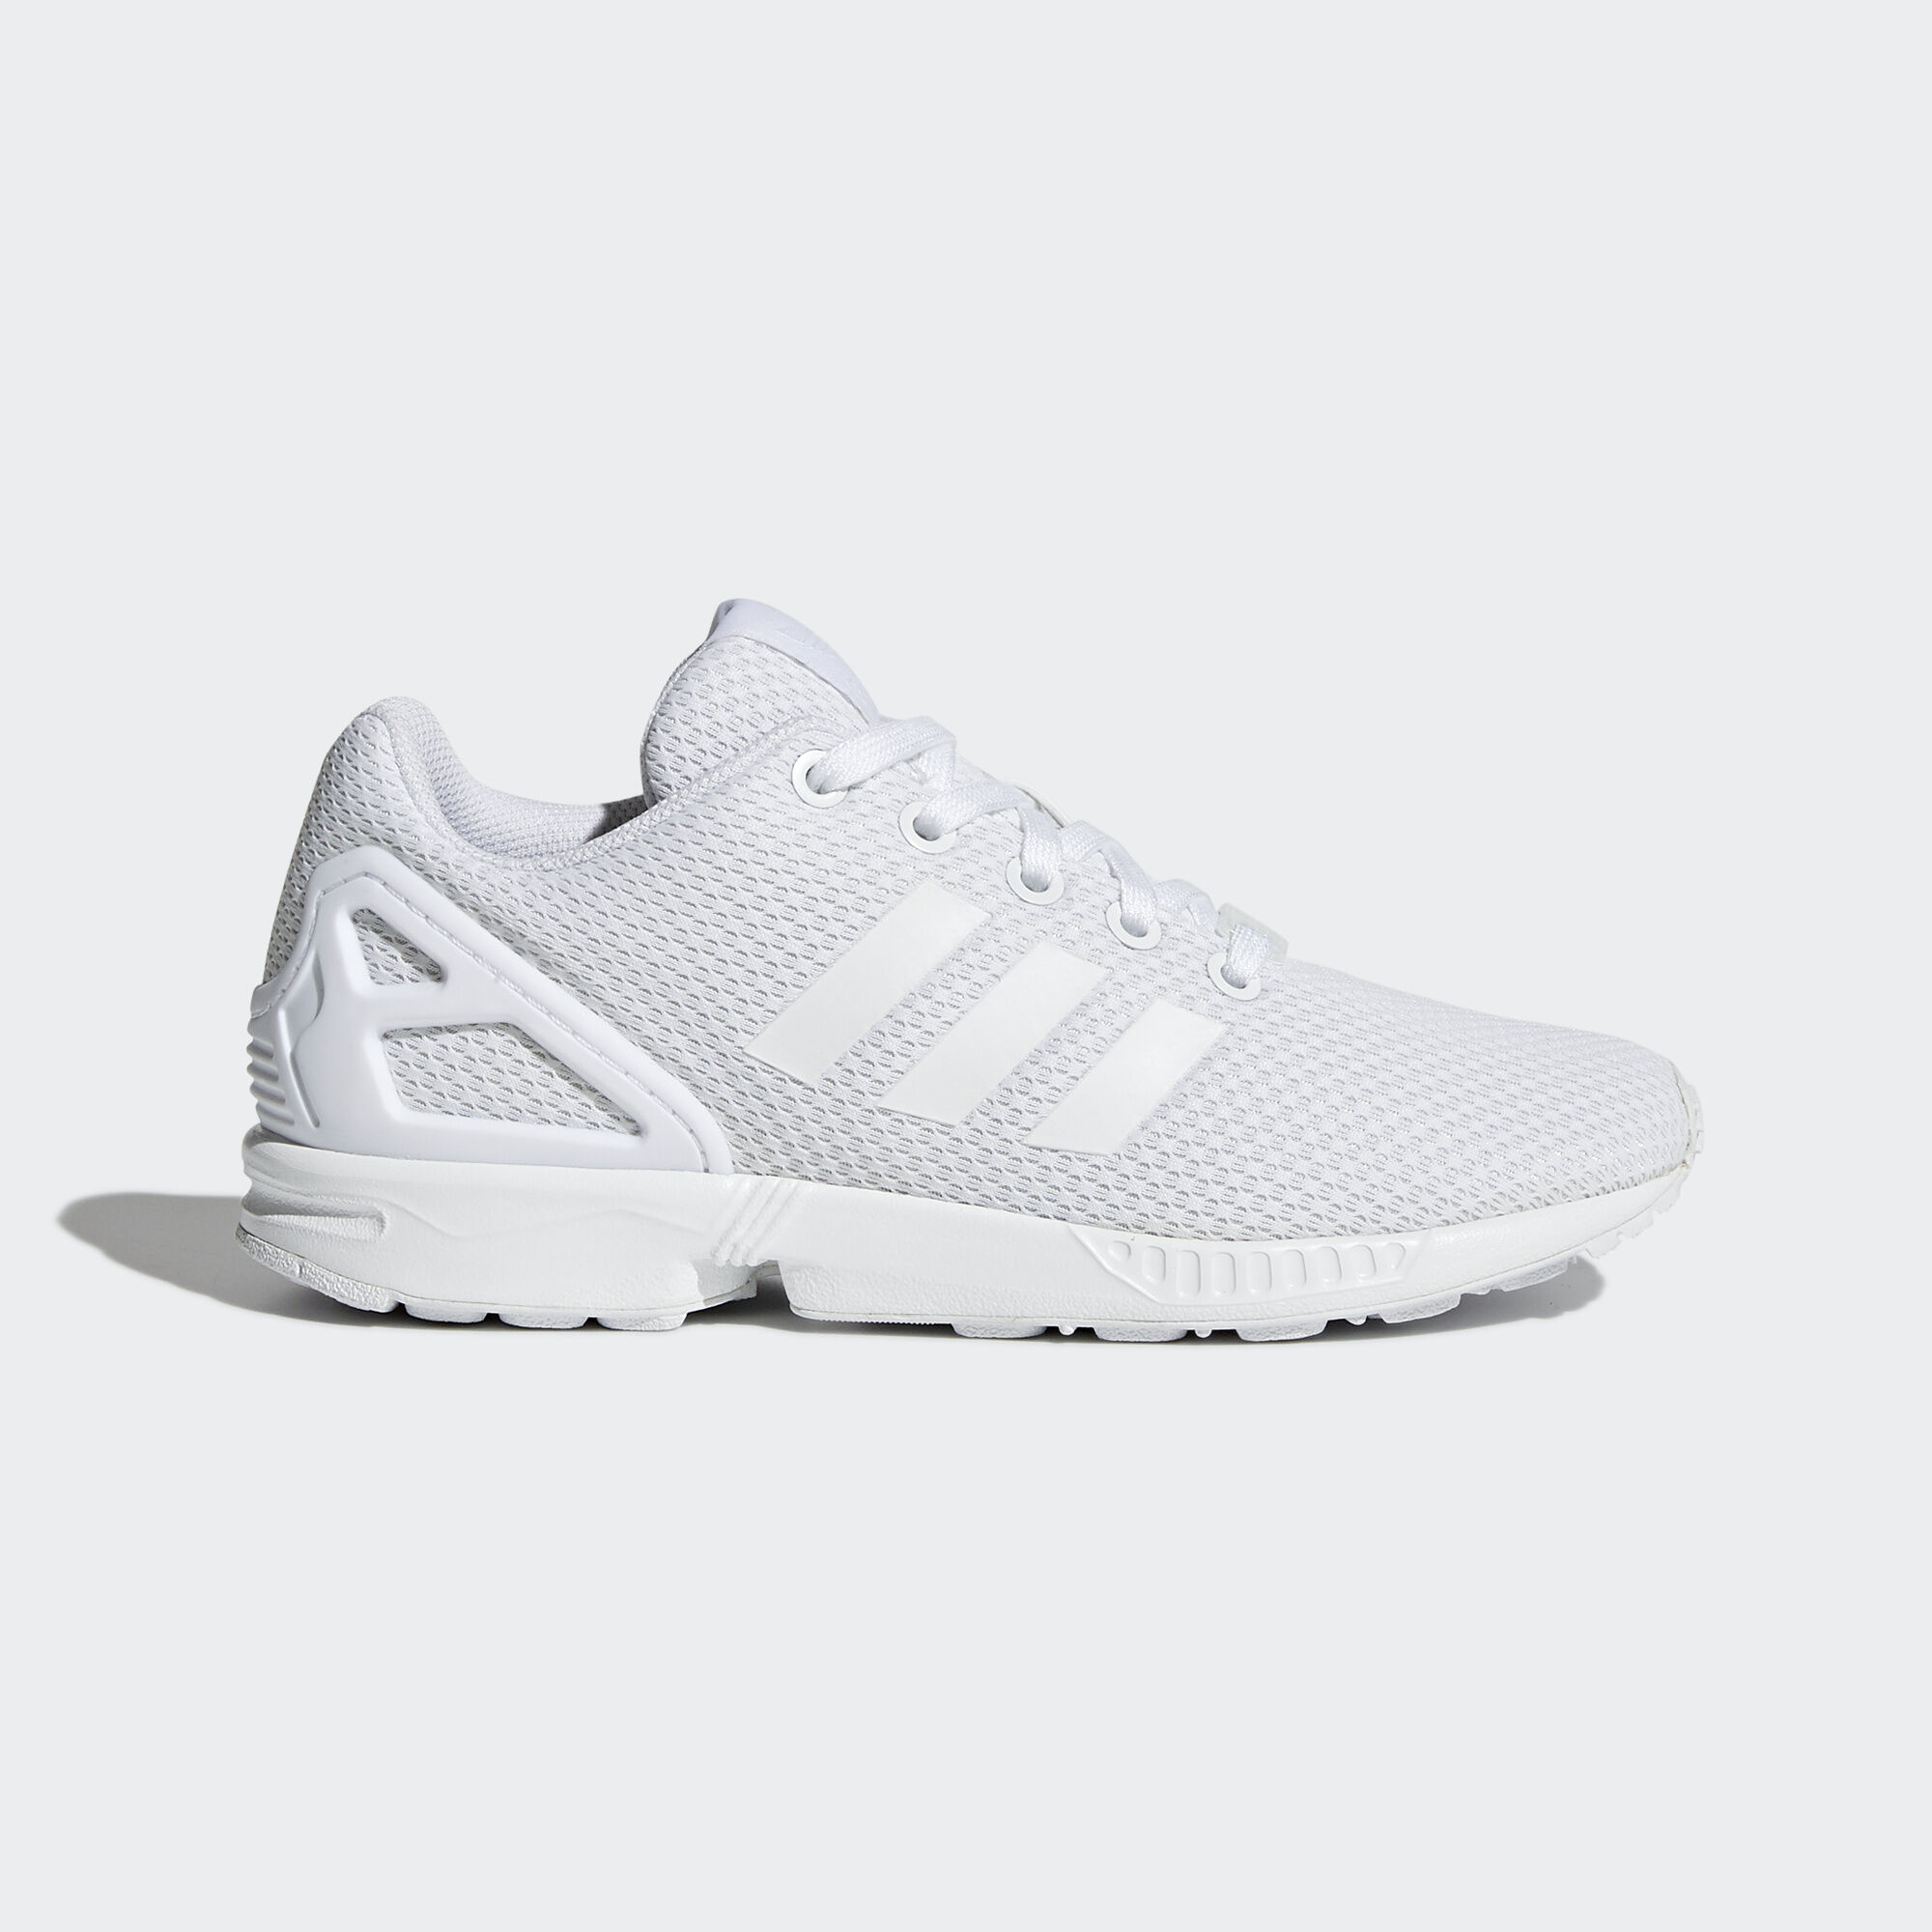 Adidas Flux White And Gold